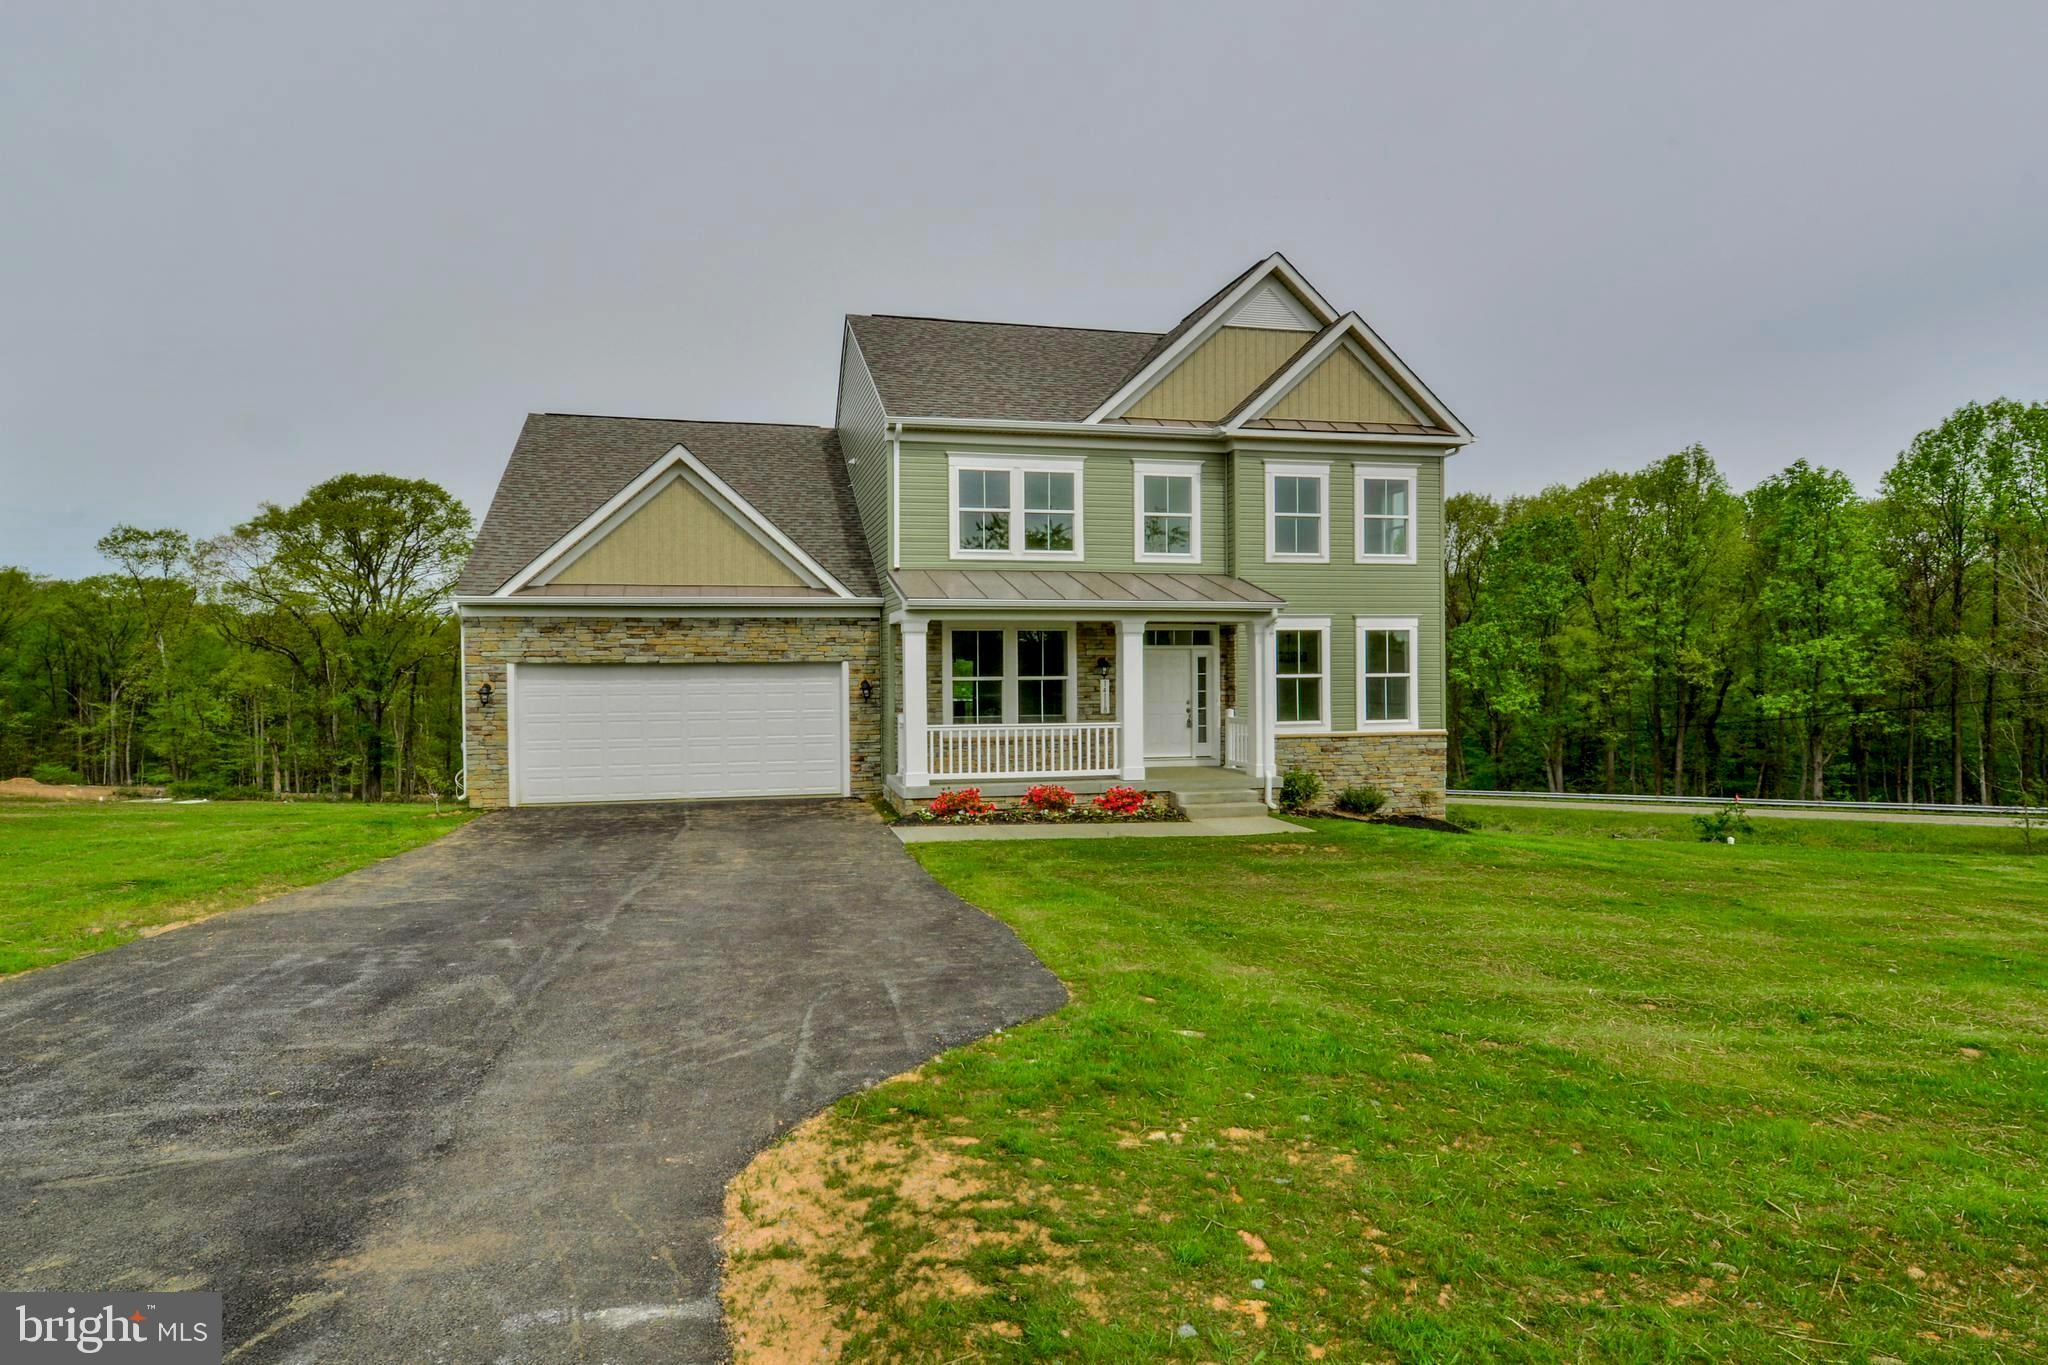 14118 Four County Dr, Mount Airy, MD, 21771